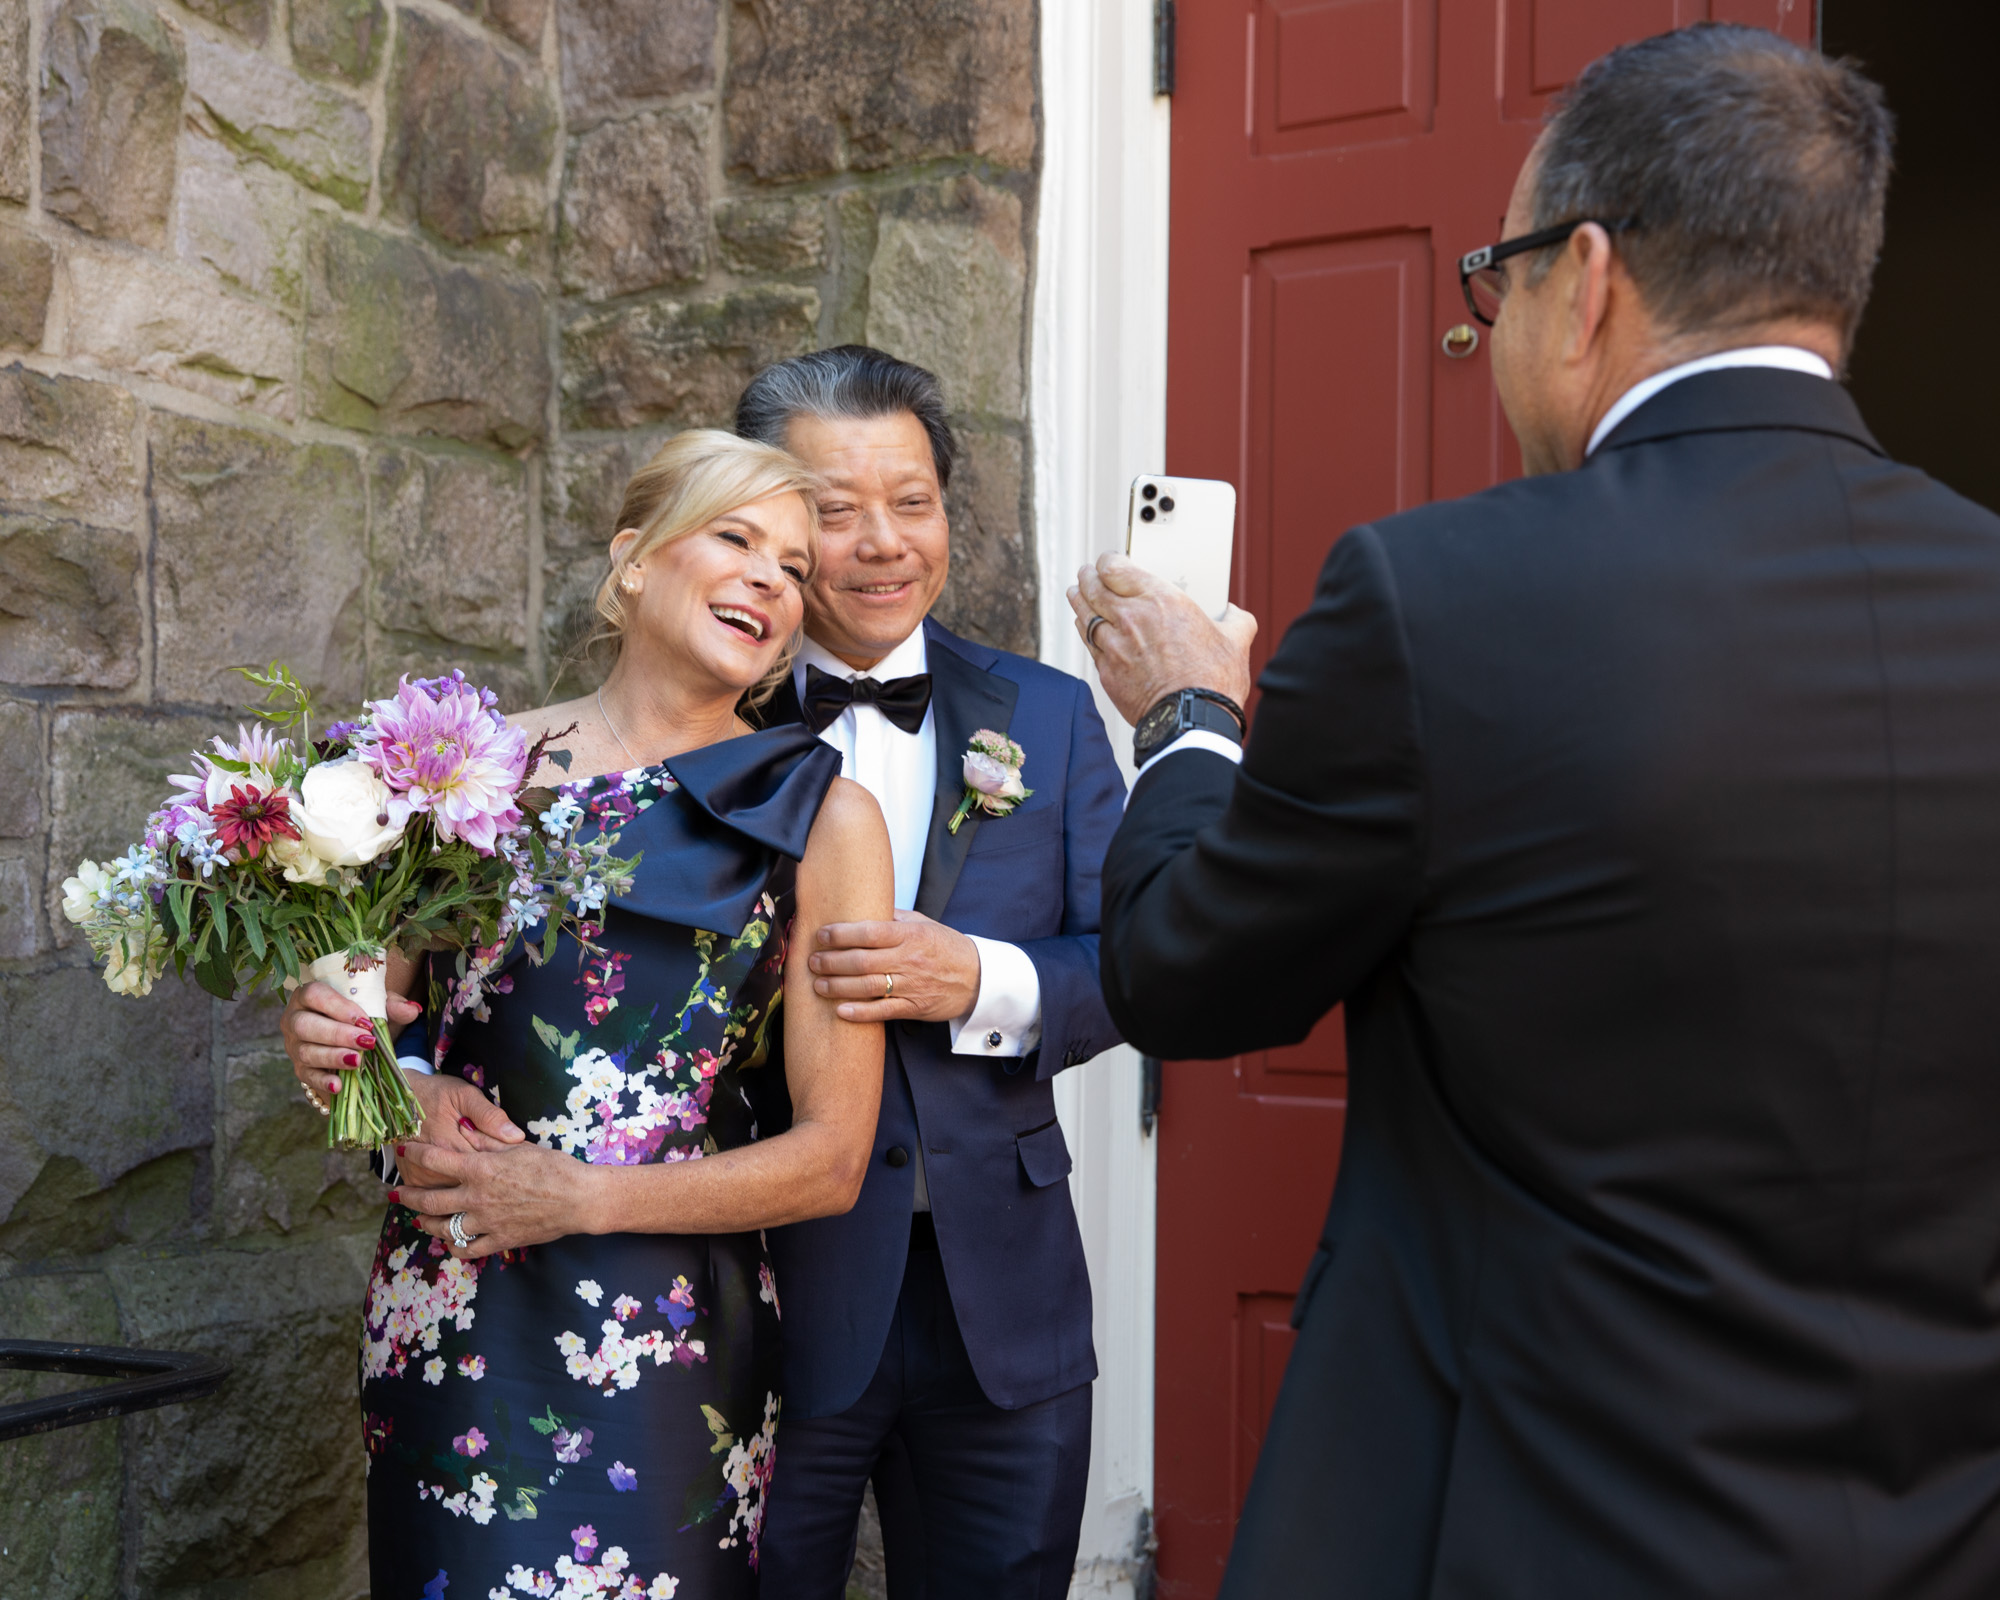 Elegant bride and groom make video call to family after saying vows at Flemington Presbyterian Church in Flemington NJ photographed by Laura Billingham